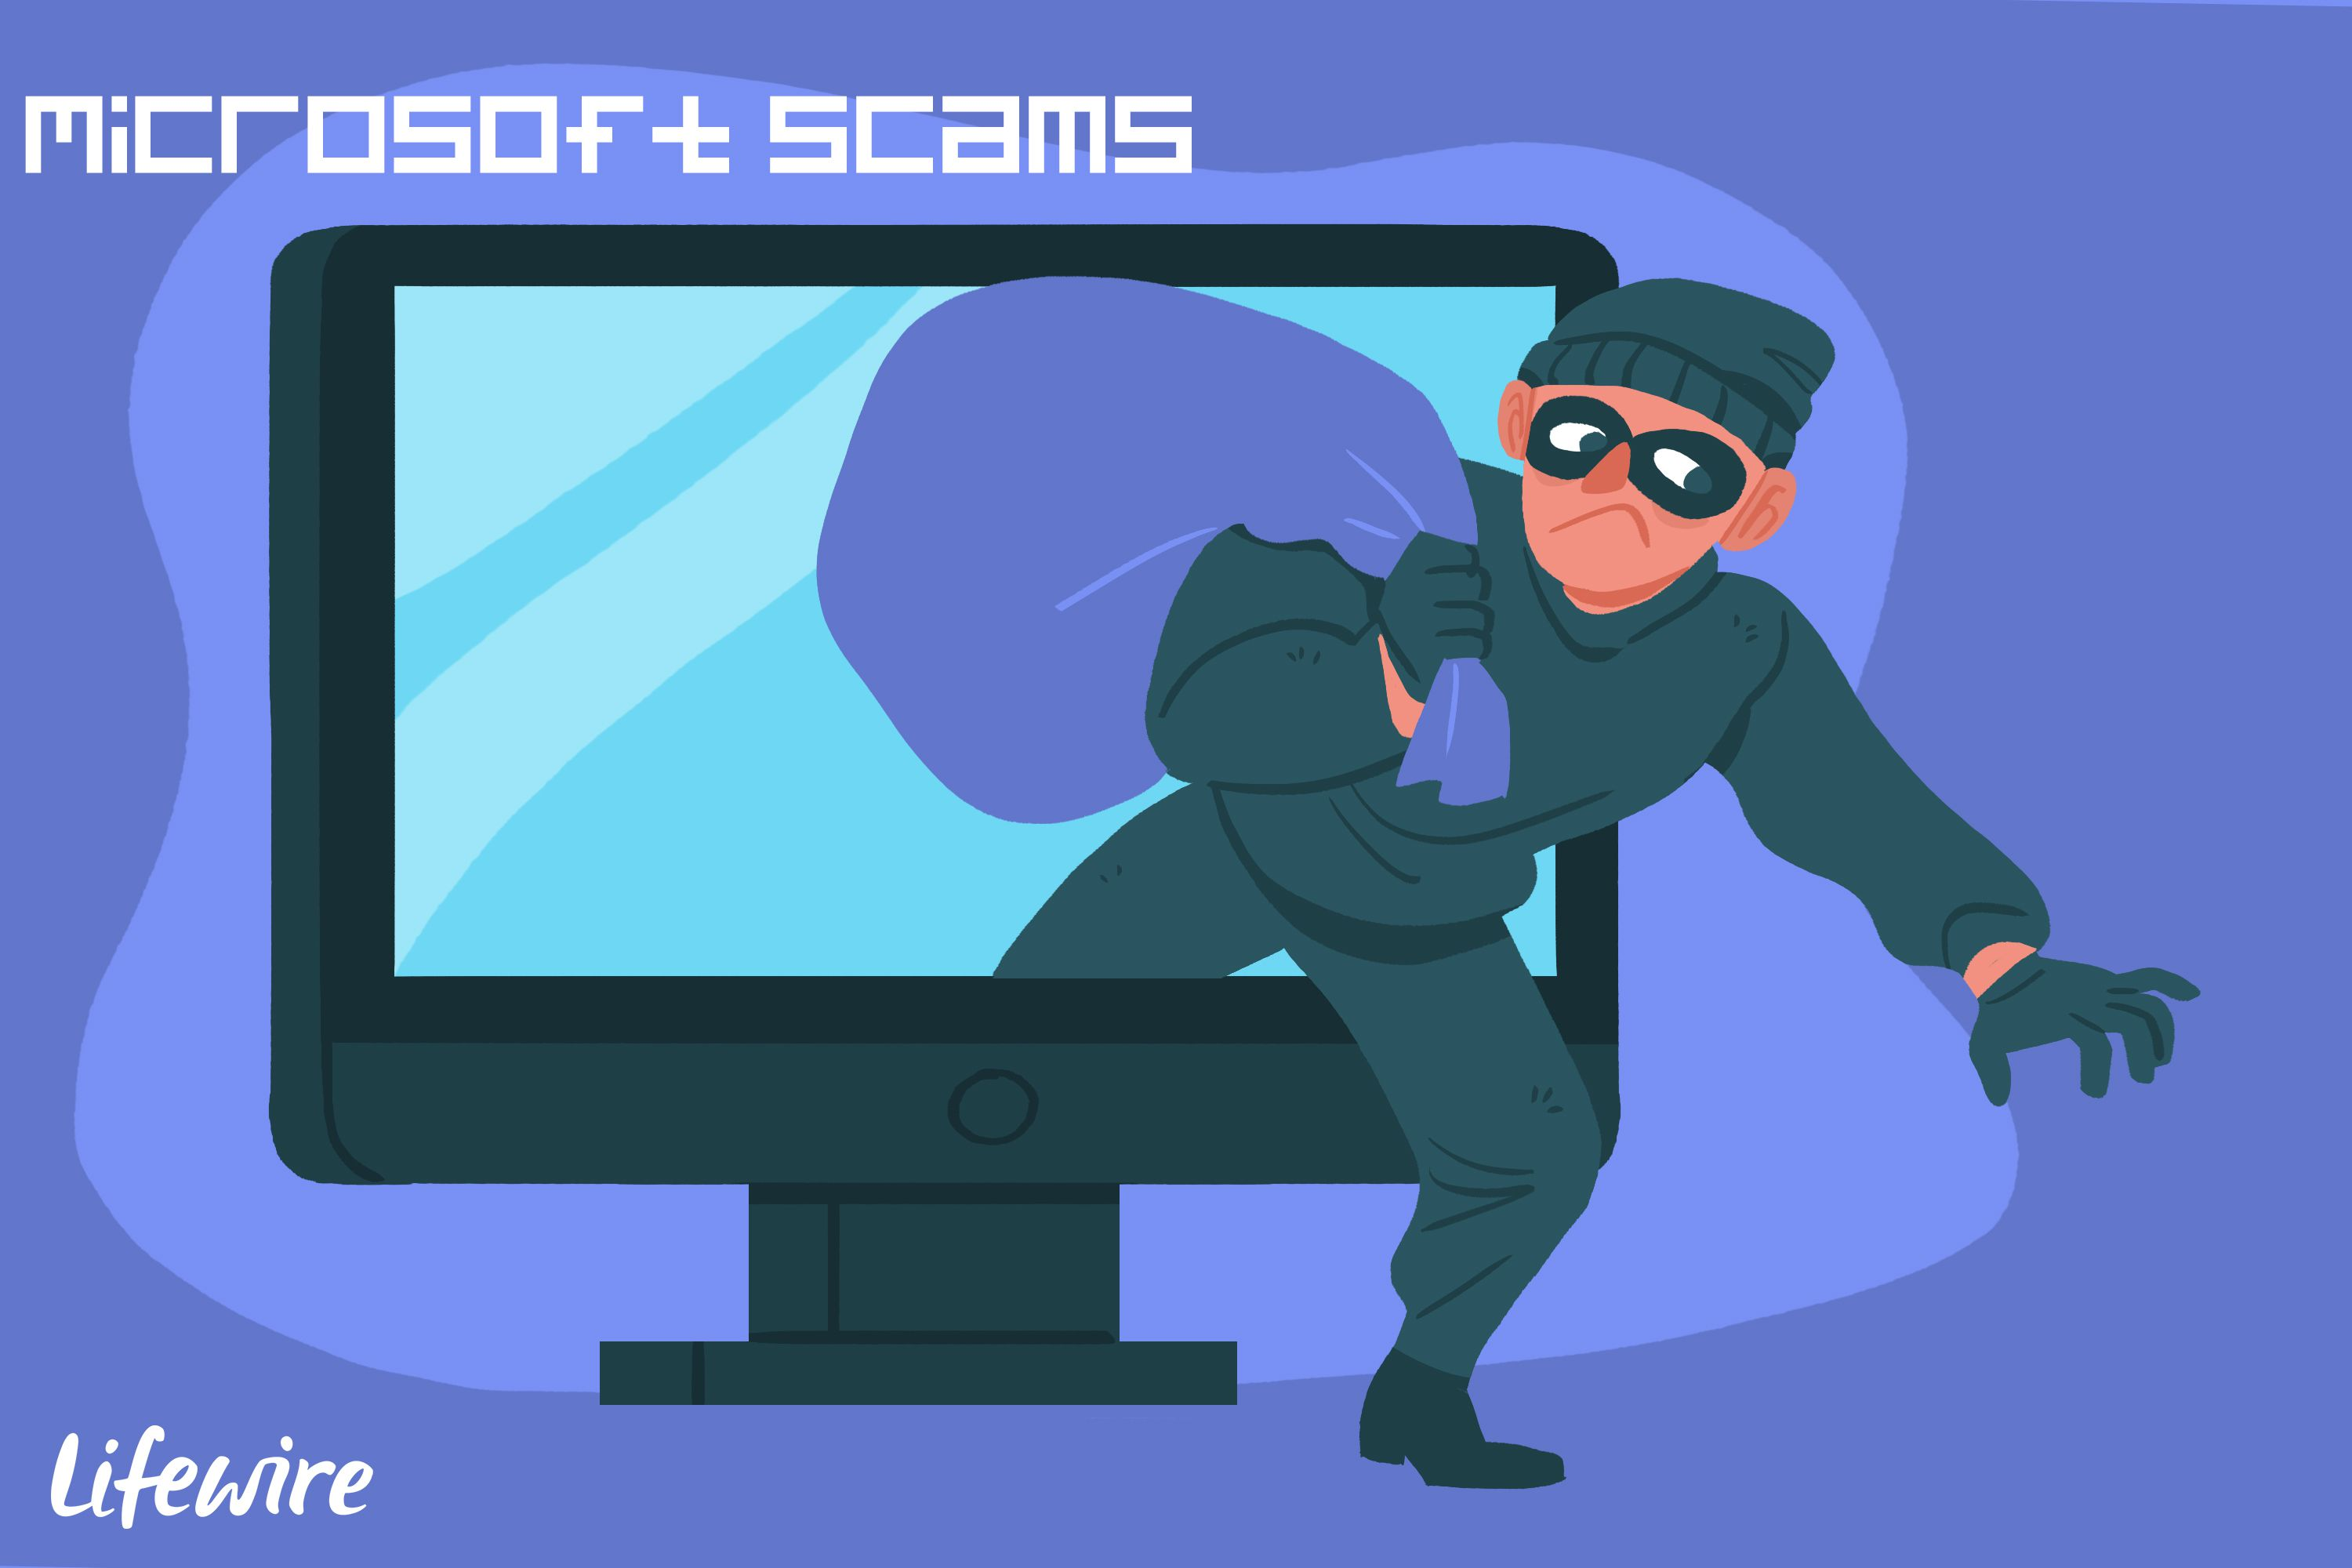 Microsoft Scams: What They Are and How to Protect Yourself From Them